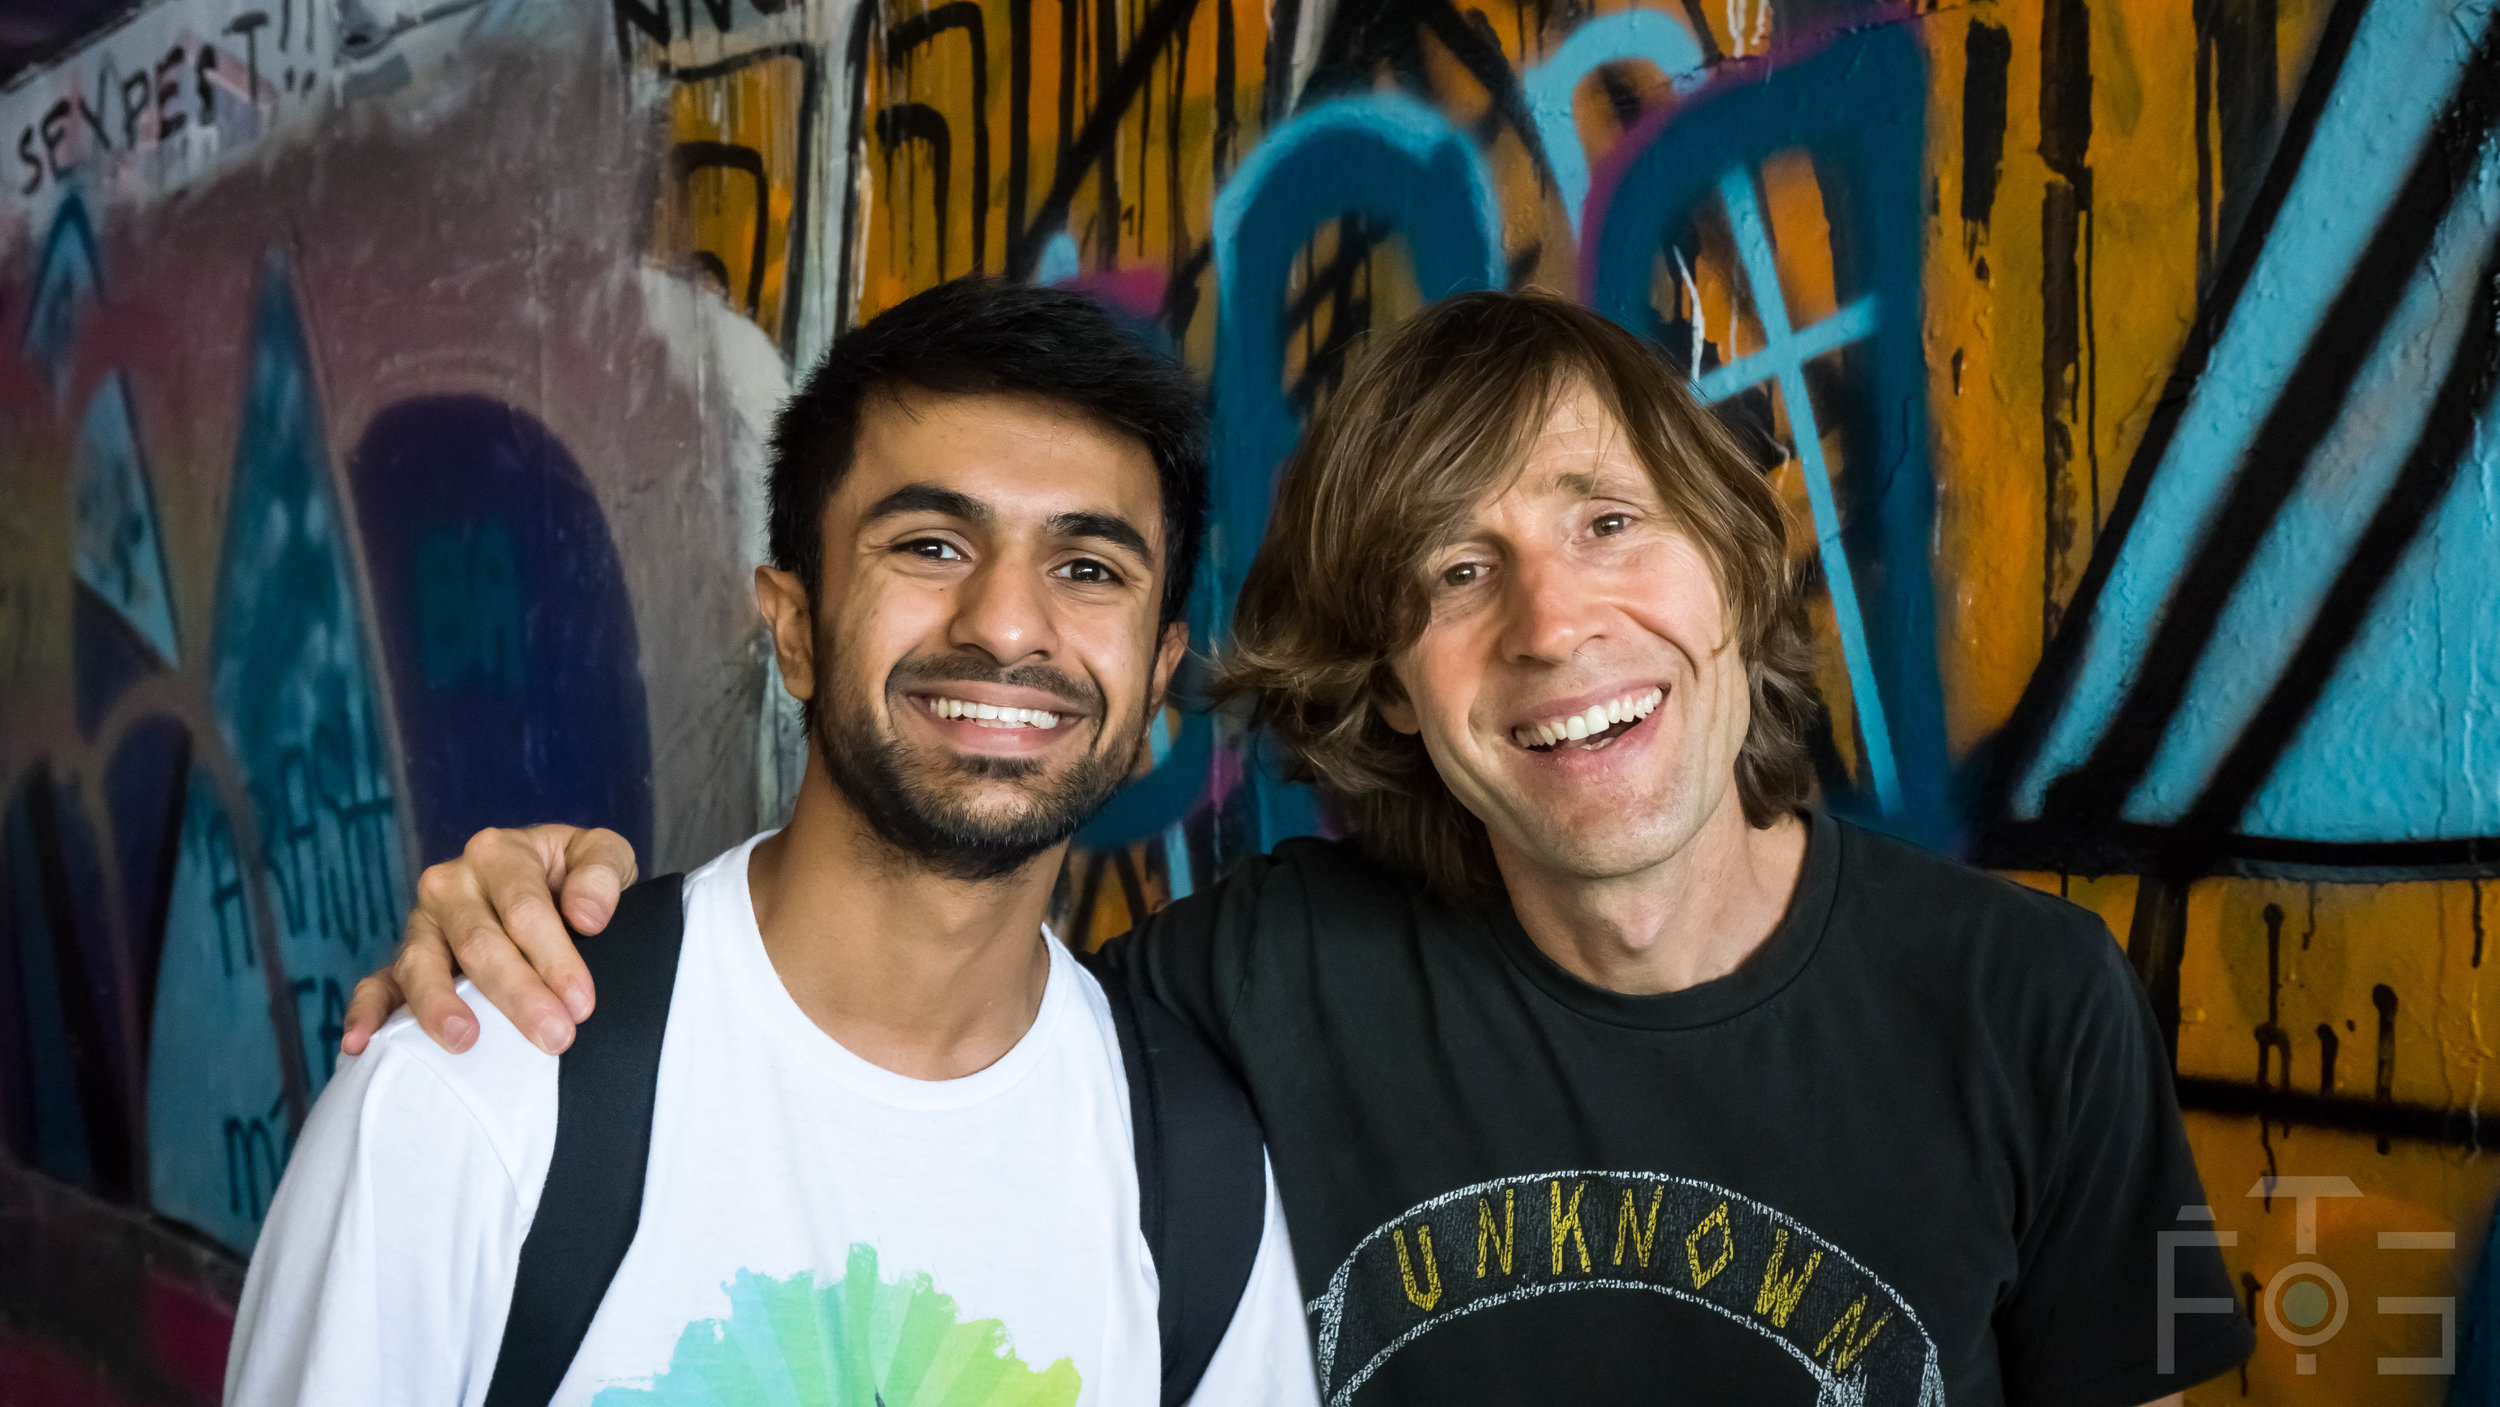 Myself and Rodney Mullen. 1/125 secs, f7.1, ISO 2000.